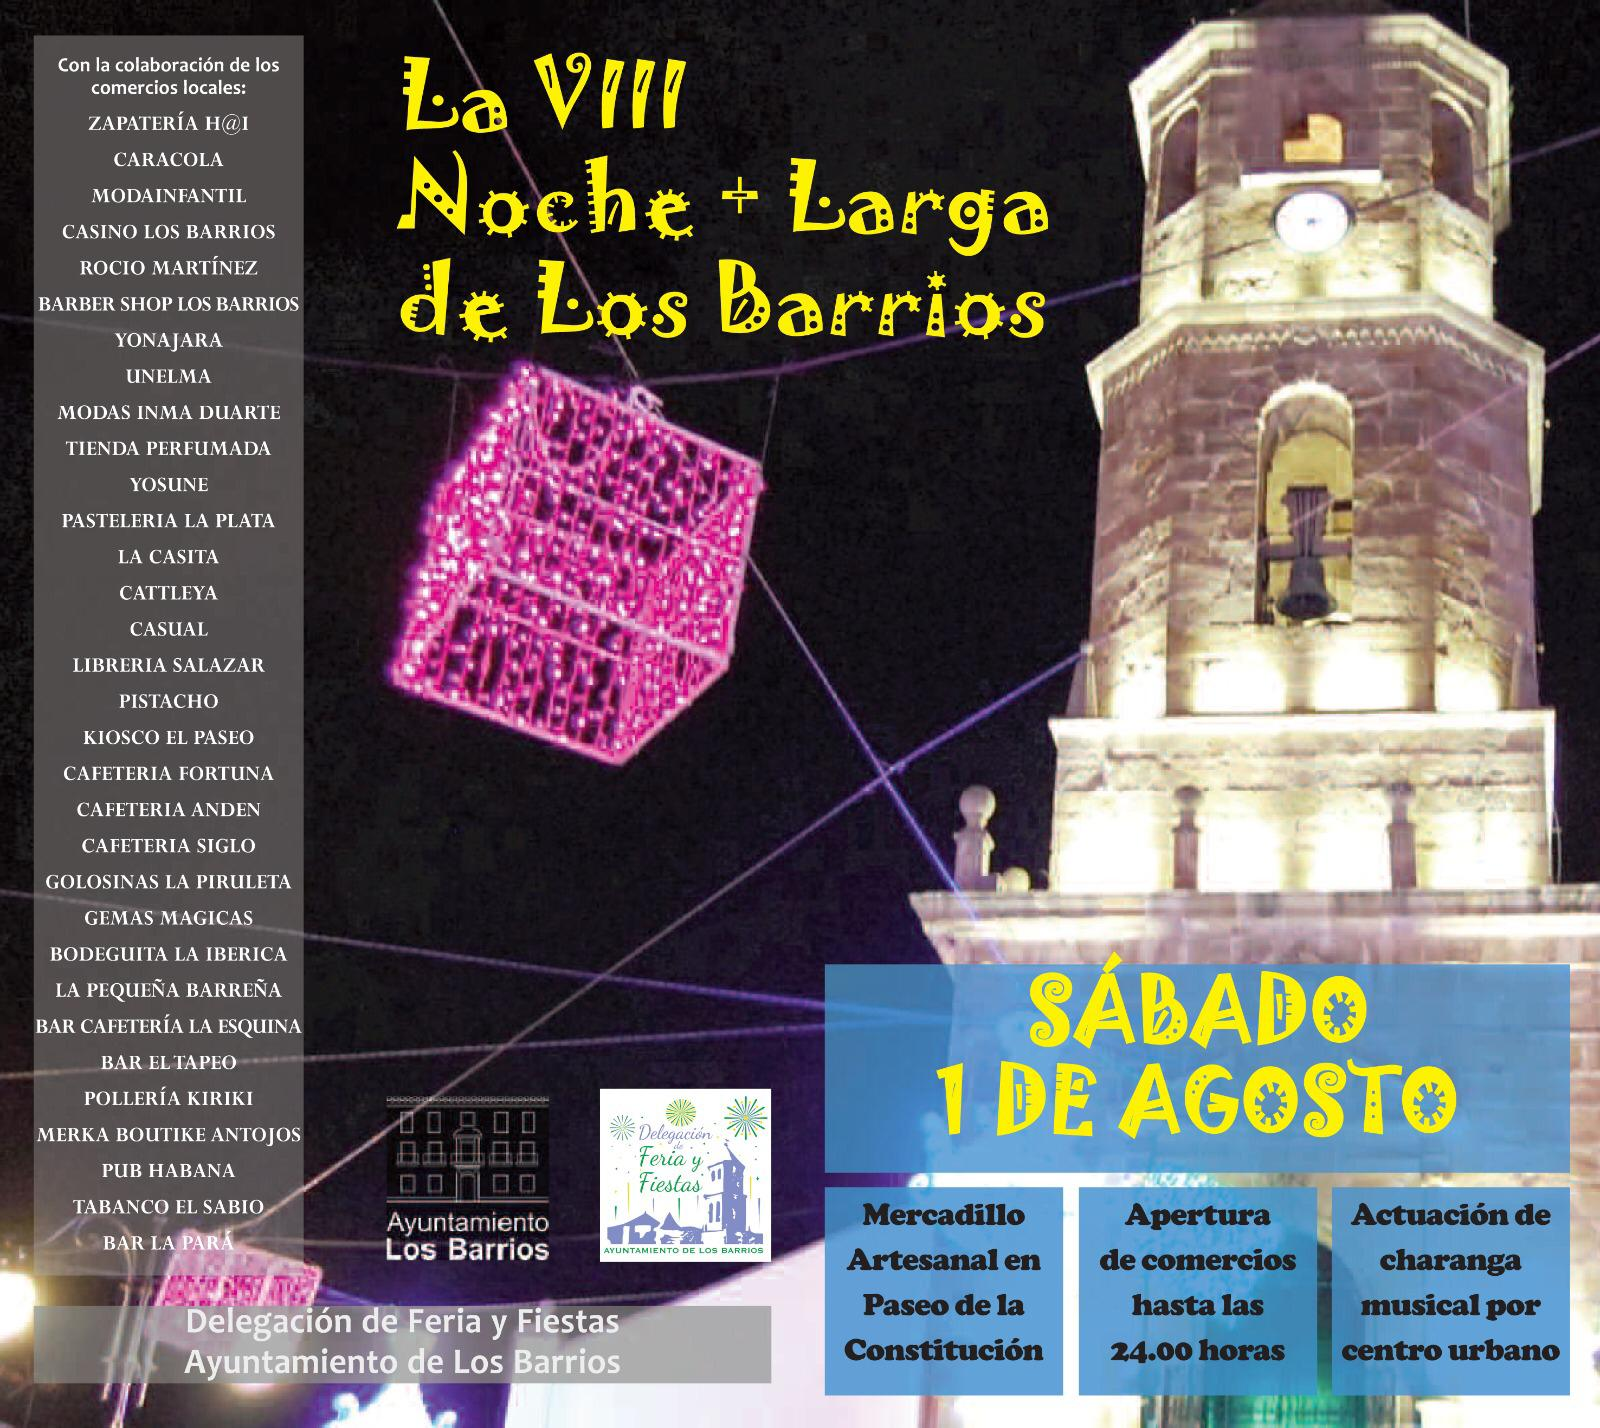 sites/default/files/2020/agenda/rutas-y-visitas/Noche Larga LOSBARRIOS.jpeg